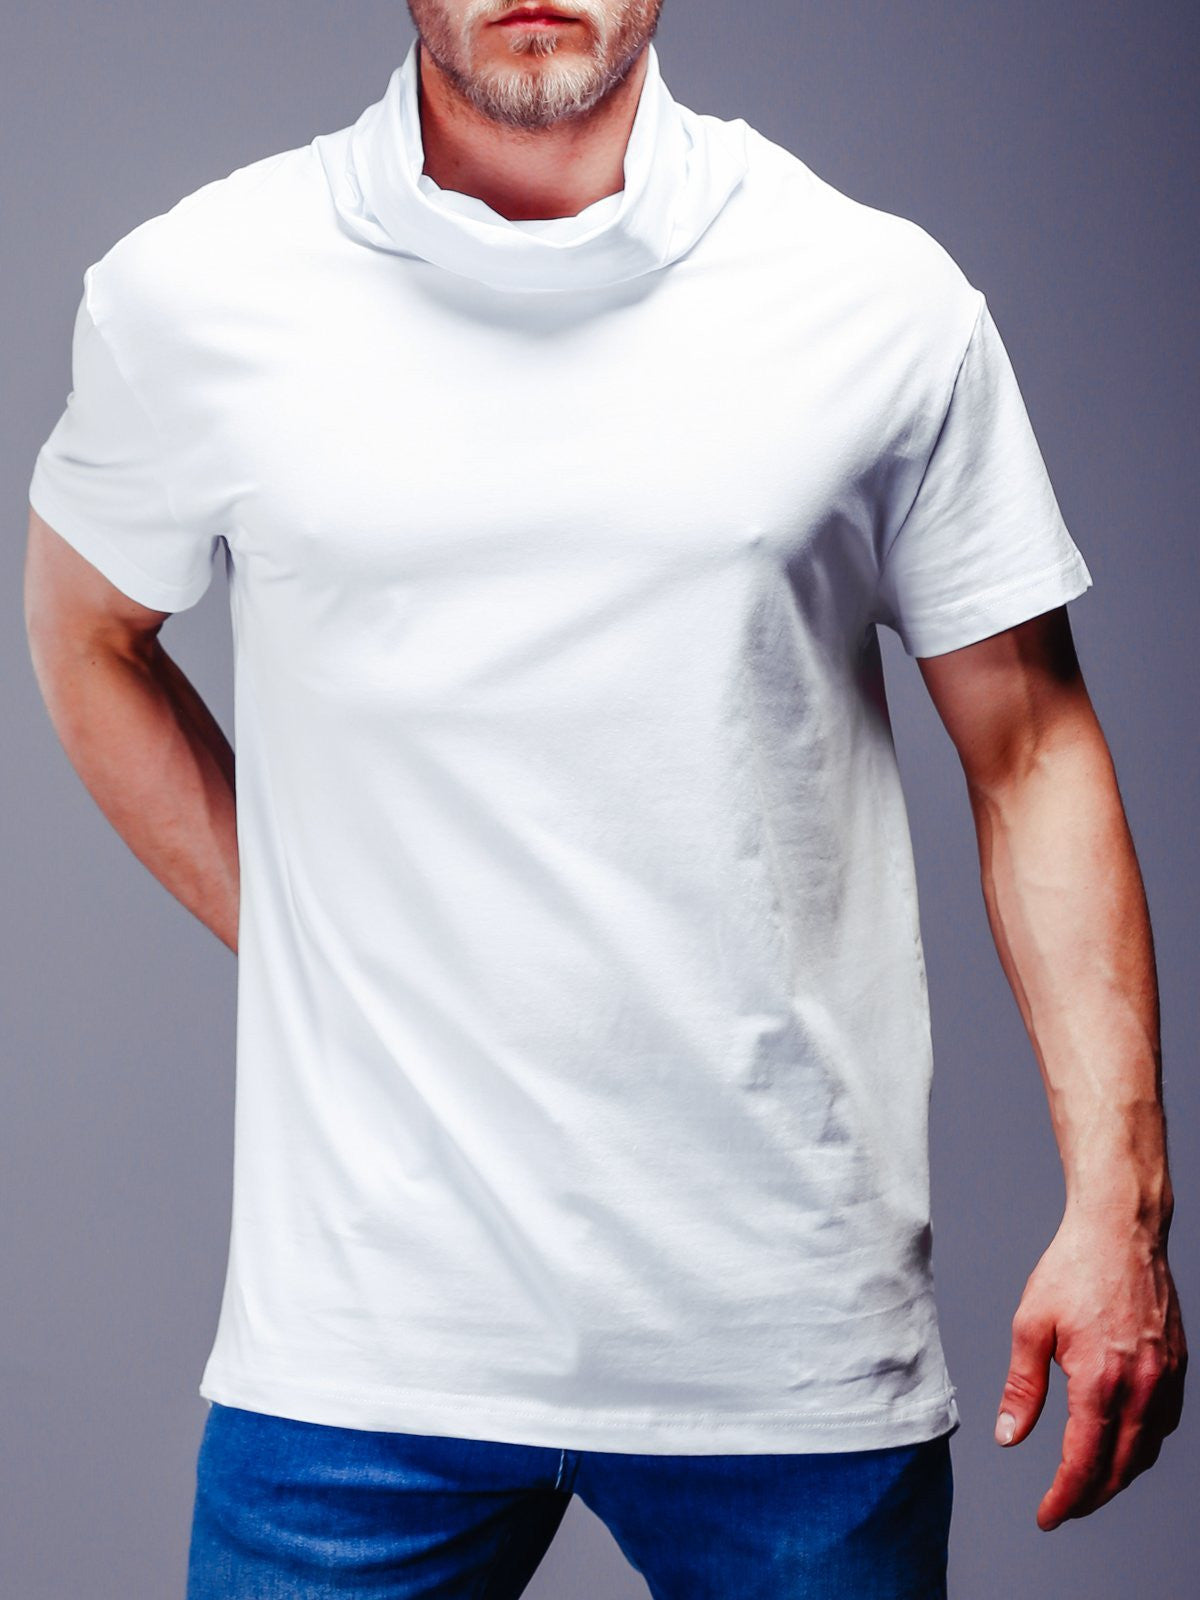 Super Longline T-Shirt Turtleneck 4346